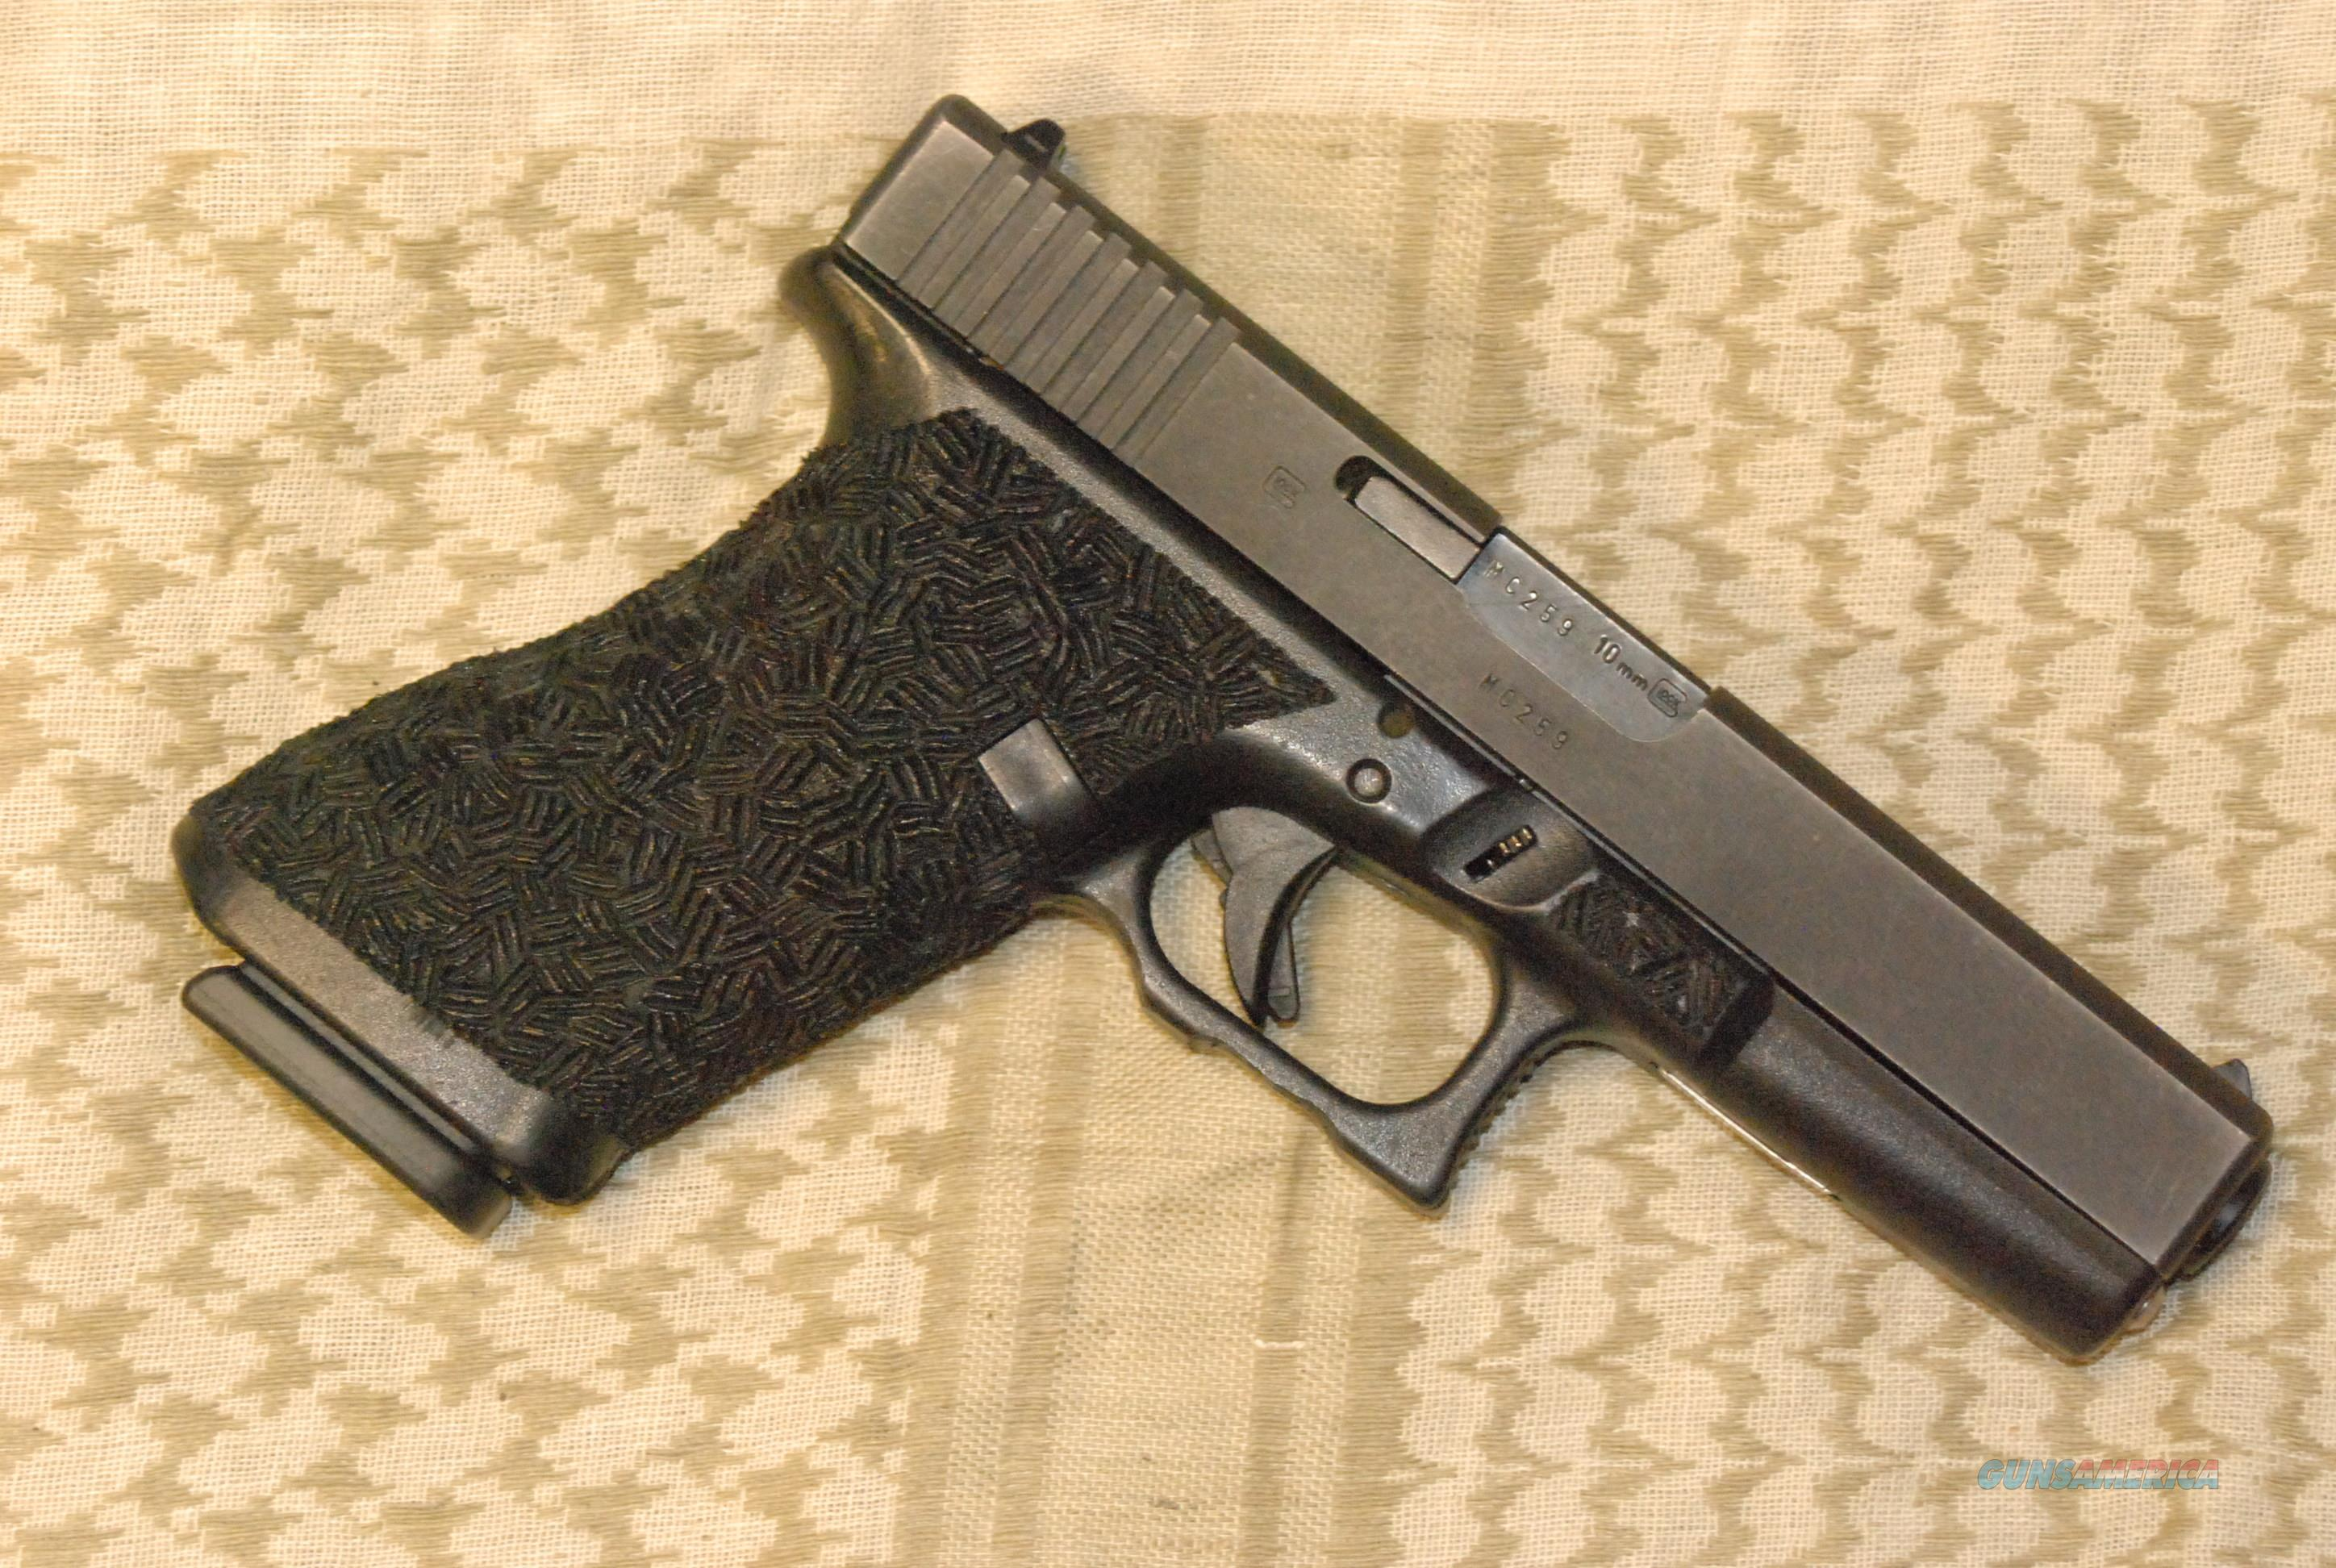 Glock 20 Gen 2 Stippled & Double Undercut  Guns > Pistols > Glock Pistols > 20/21